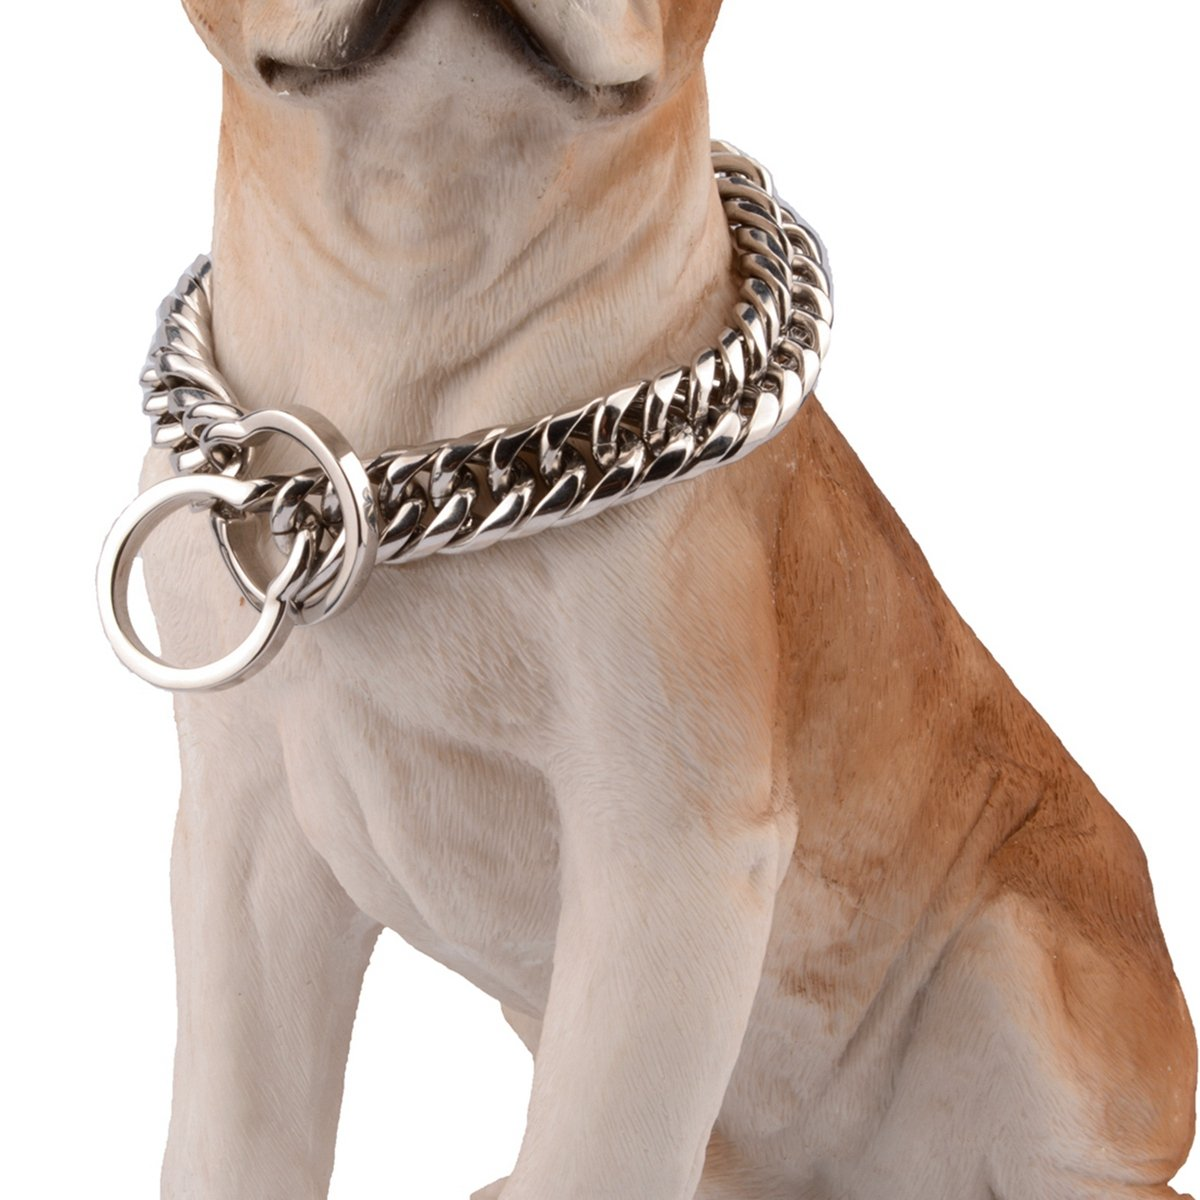 26inch recommend dog's neck 22inch Bestss Jewelry 16 18mm Silver Tone Curb Chain Stainless Steel Strong Dog Choke Training Chain Collar Pet Necklace,14-36 Inches (16mm Wide, 26inch Recommend Dog's Neck 22inch)